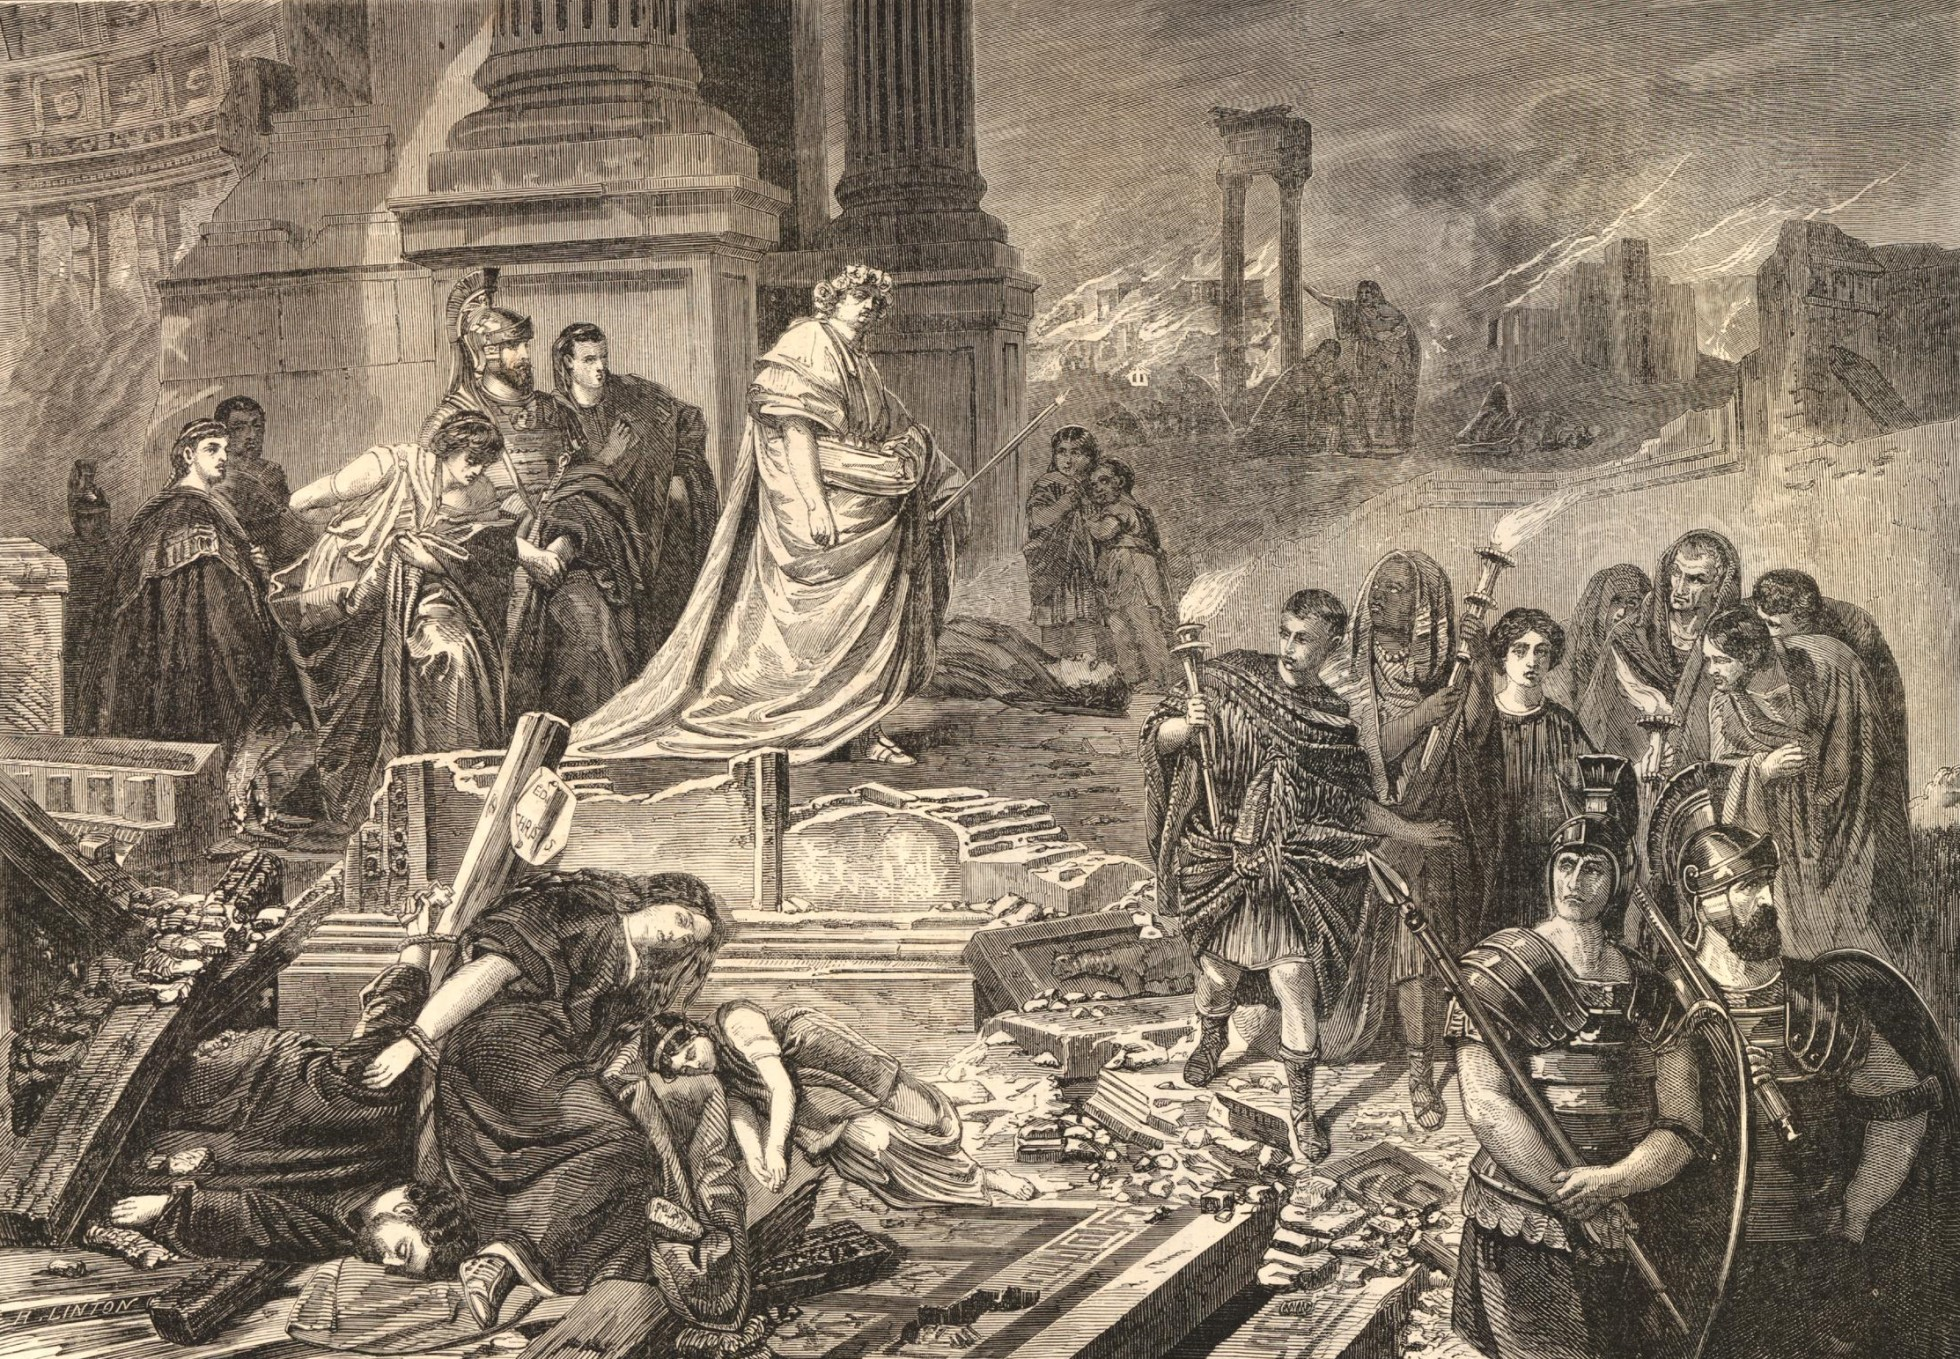 Black and white print showing Nero, standing in a ruined building  overlooking a destroyed Rome, which is still smoking following the fire. Nero stands in an elaborate robe and wears a garland. Their are armed guards in the foreground. There are bodies of people who have been killed, apparently by falling parts of the building.